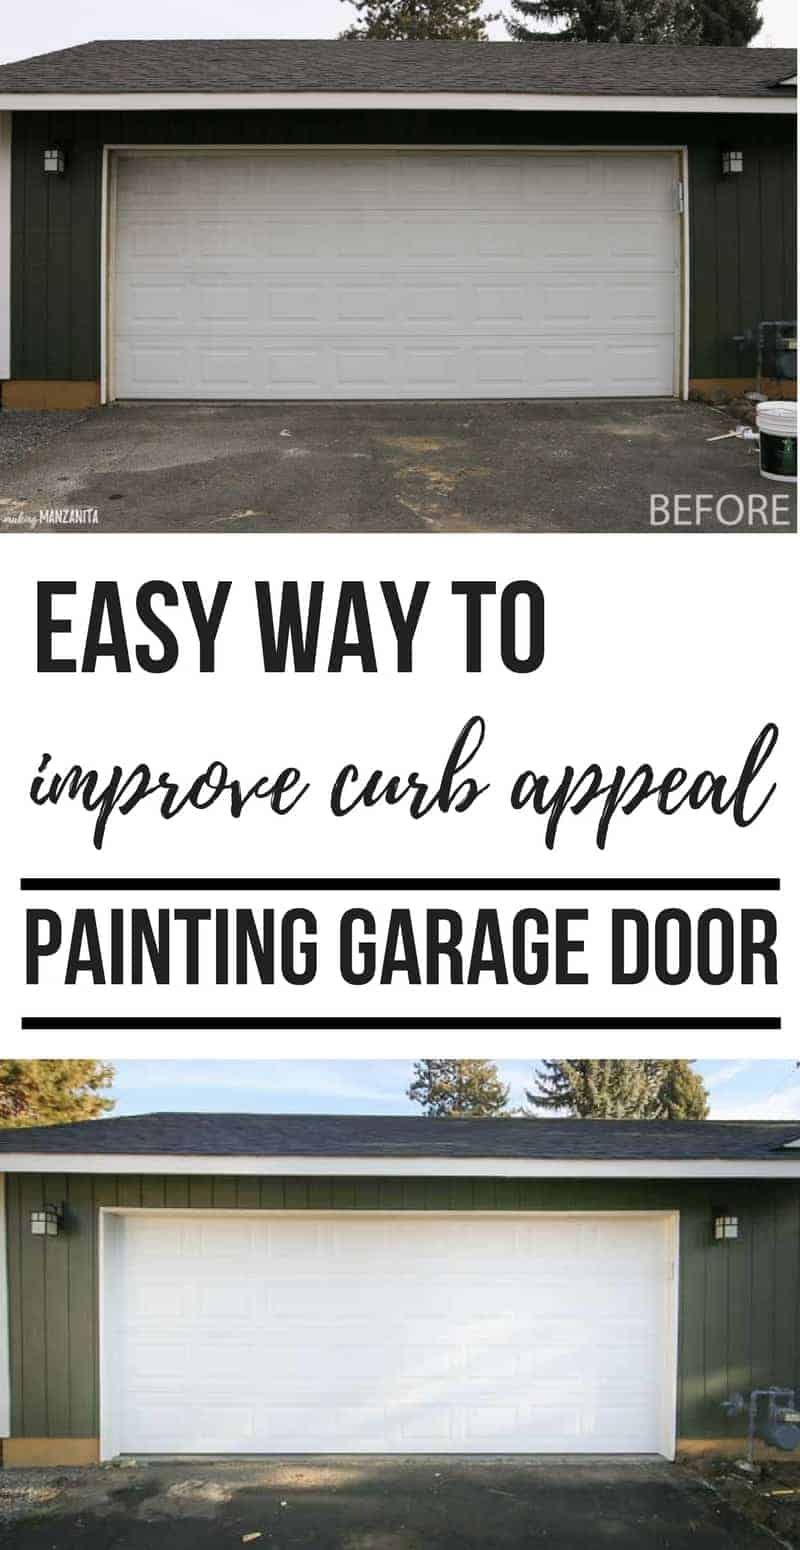 Easy way to improve curb appeal - DIY painting garage door ideas! White garage door | Dark hunter green exterior house paint and white trim | Behr Marquee exterior paint | Black Bamboo paint color | How to repaint garage door the right way